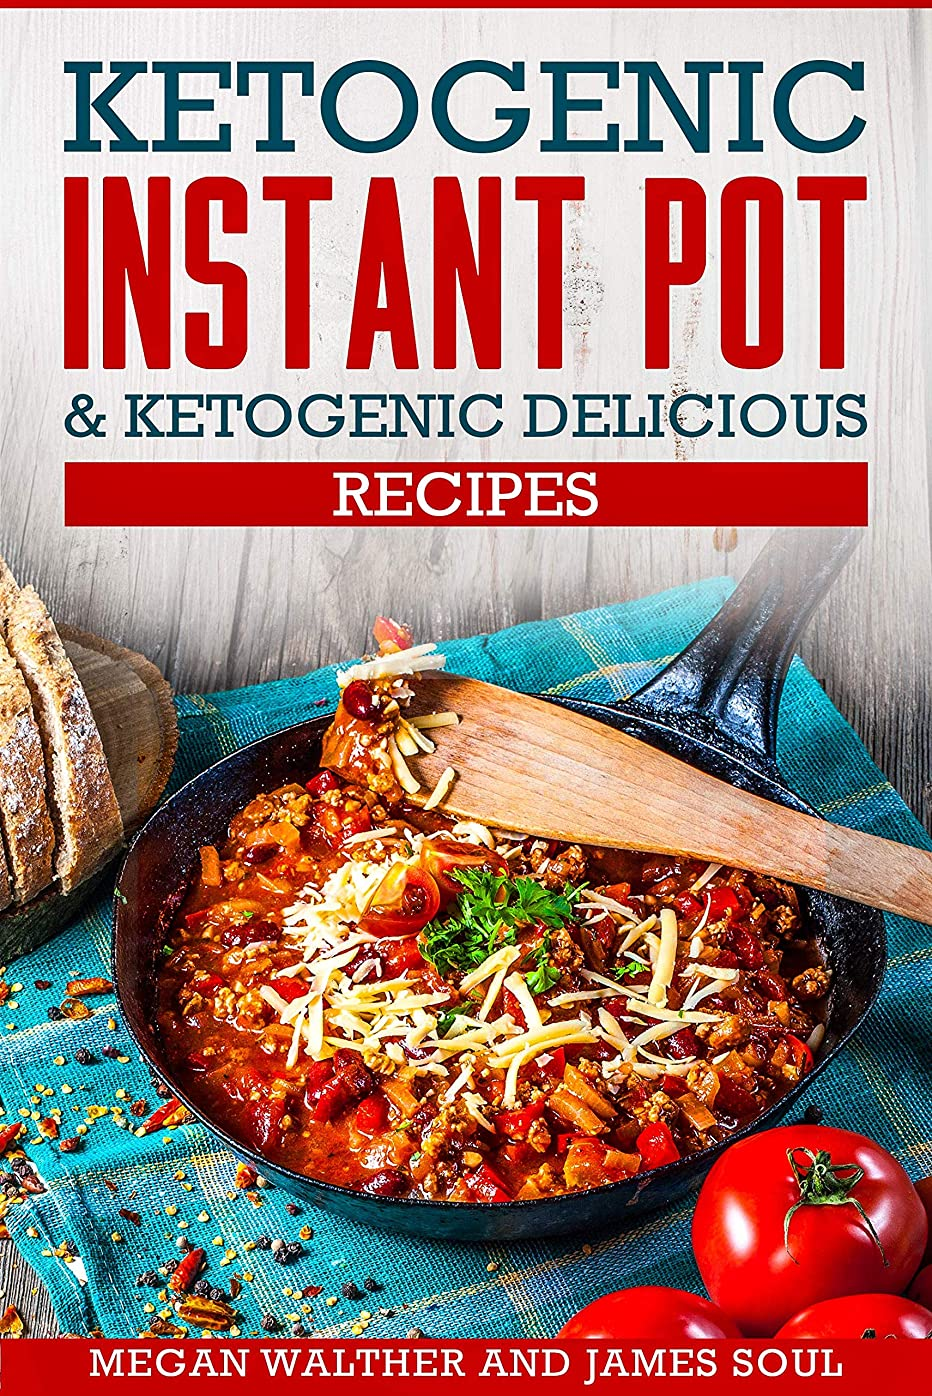 Ketogenic instant pot & Ketogenic delicious recipes (English Edition)